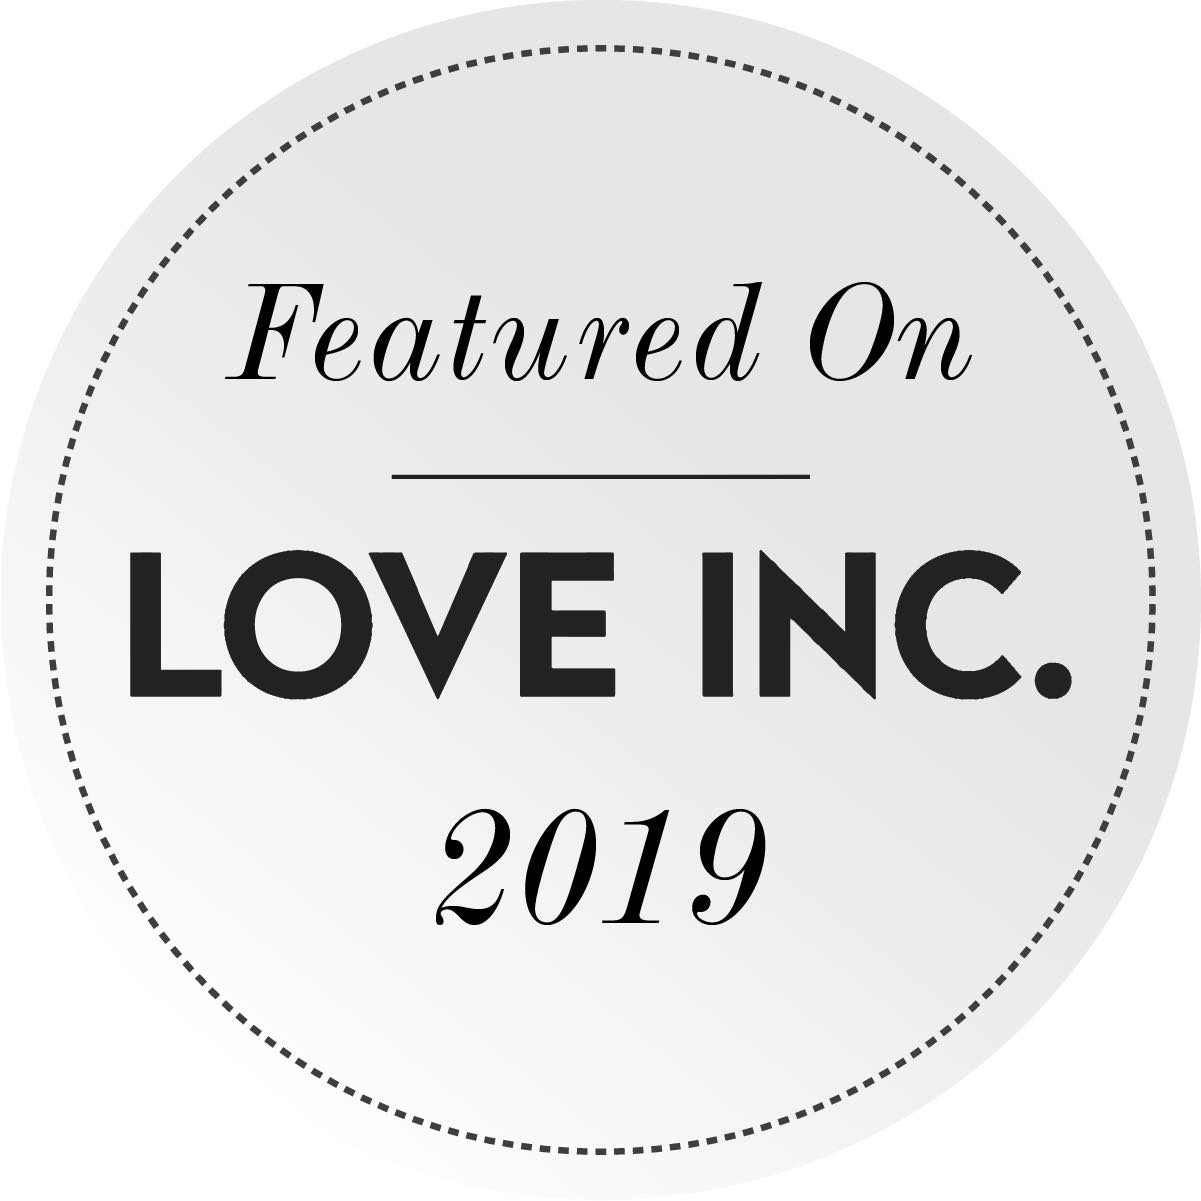 Love inc_2019 badge.jpg